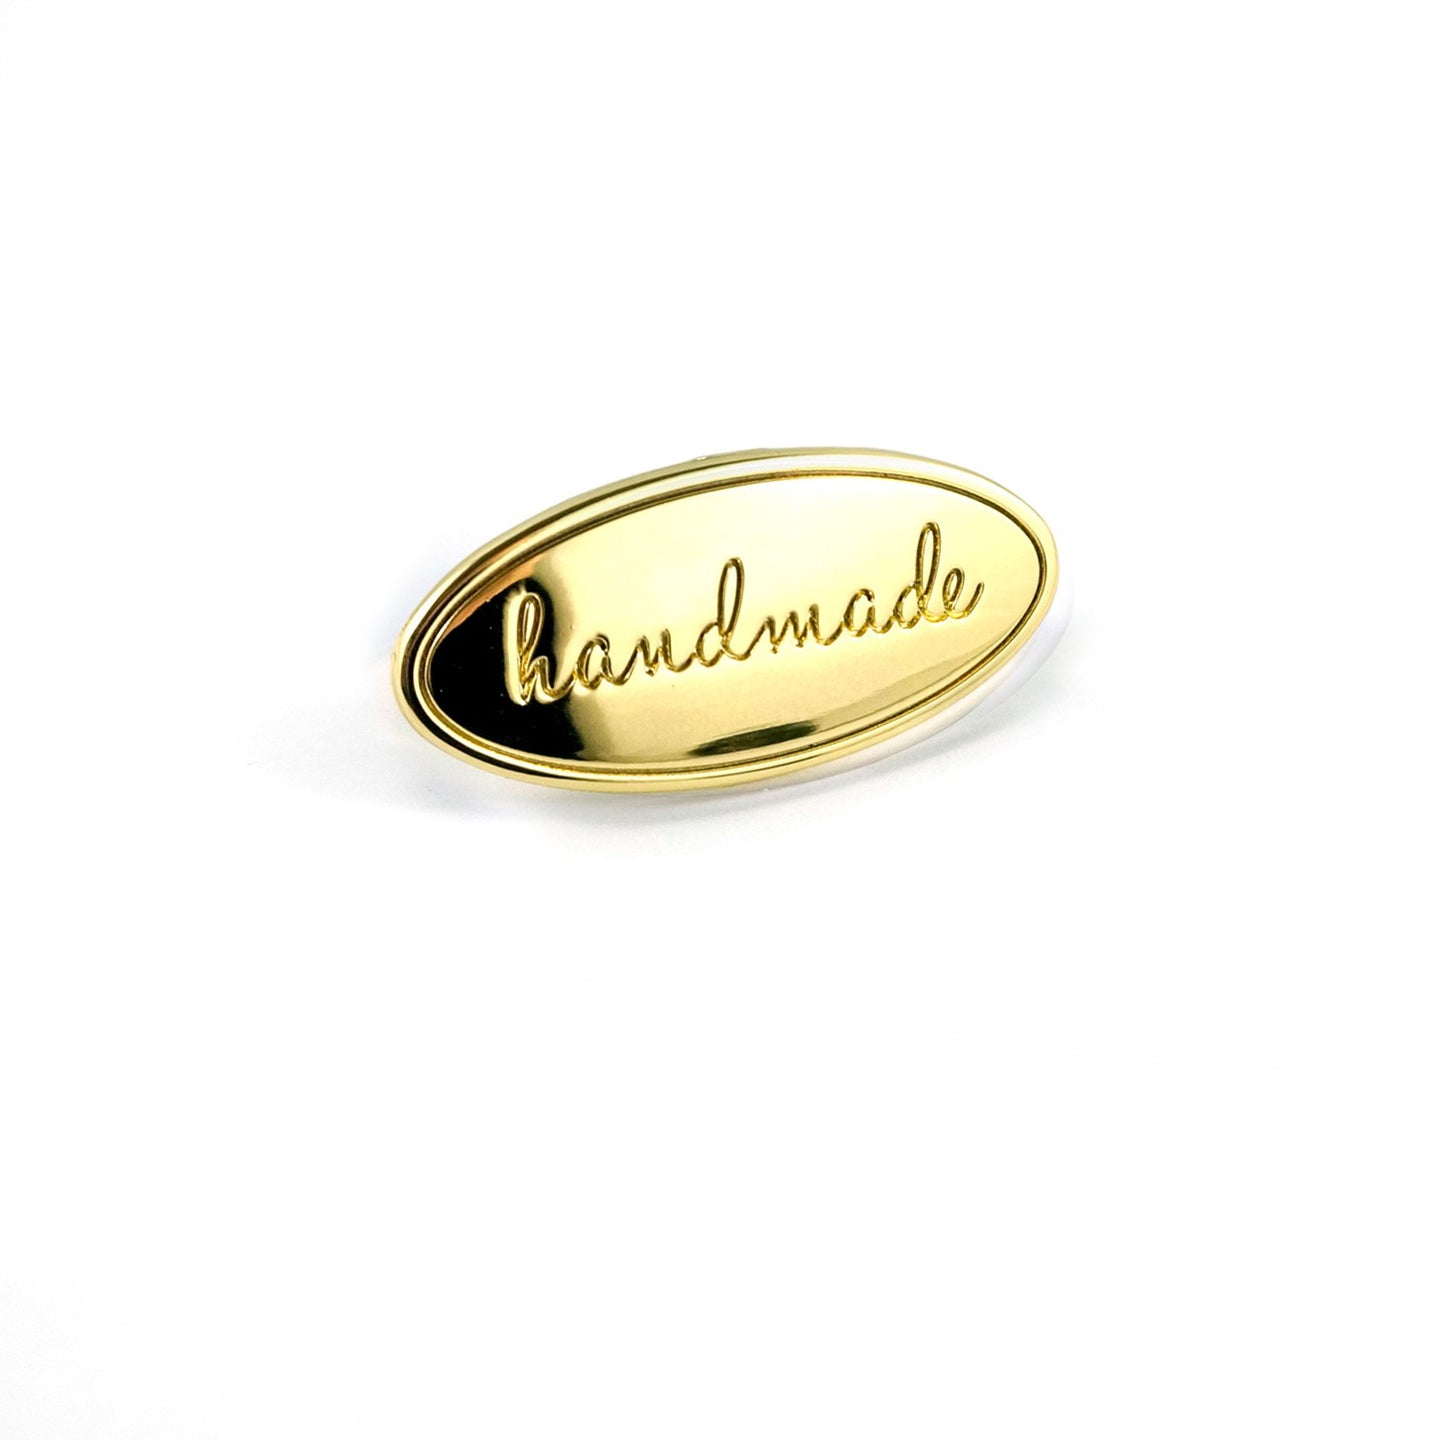 Metal Bag Label - Oval - Handmade in Gold